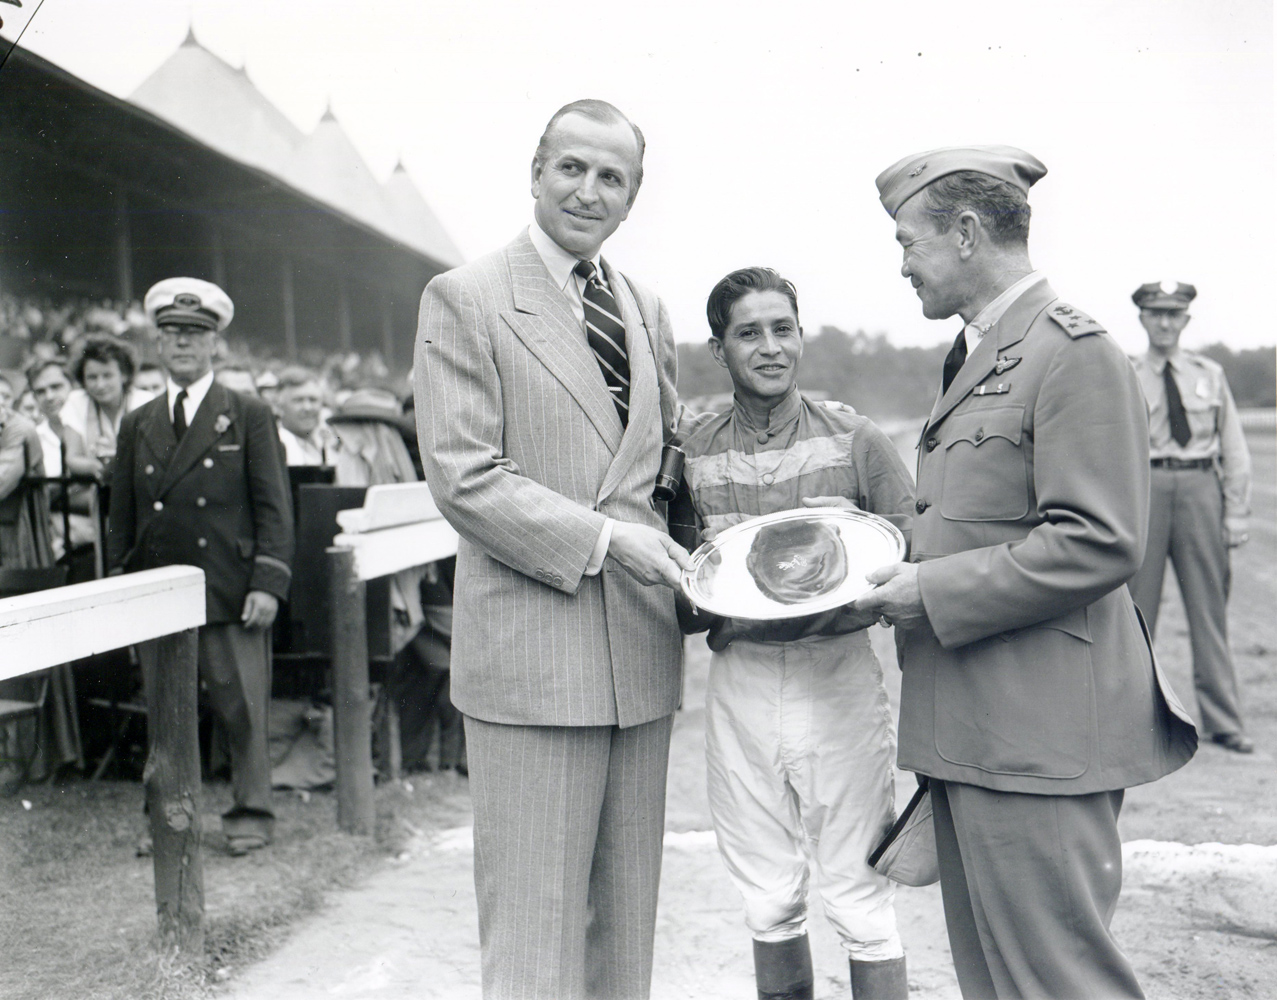 Trainer Horatio Luro, jockey Ruperto Donoso, and Vice Admiral Gerald F. Bogan at the trophy presentation from the 1947 Whitney (won by Rico Monte) at Saratoga (Keeneland Library Morgan Collection/Museum Collection)